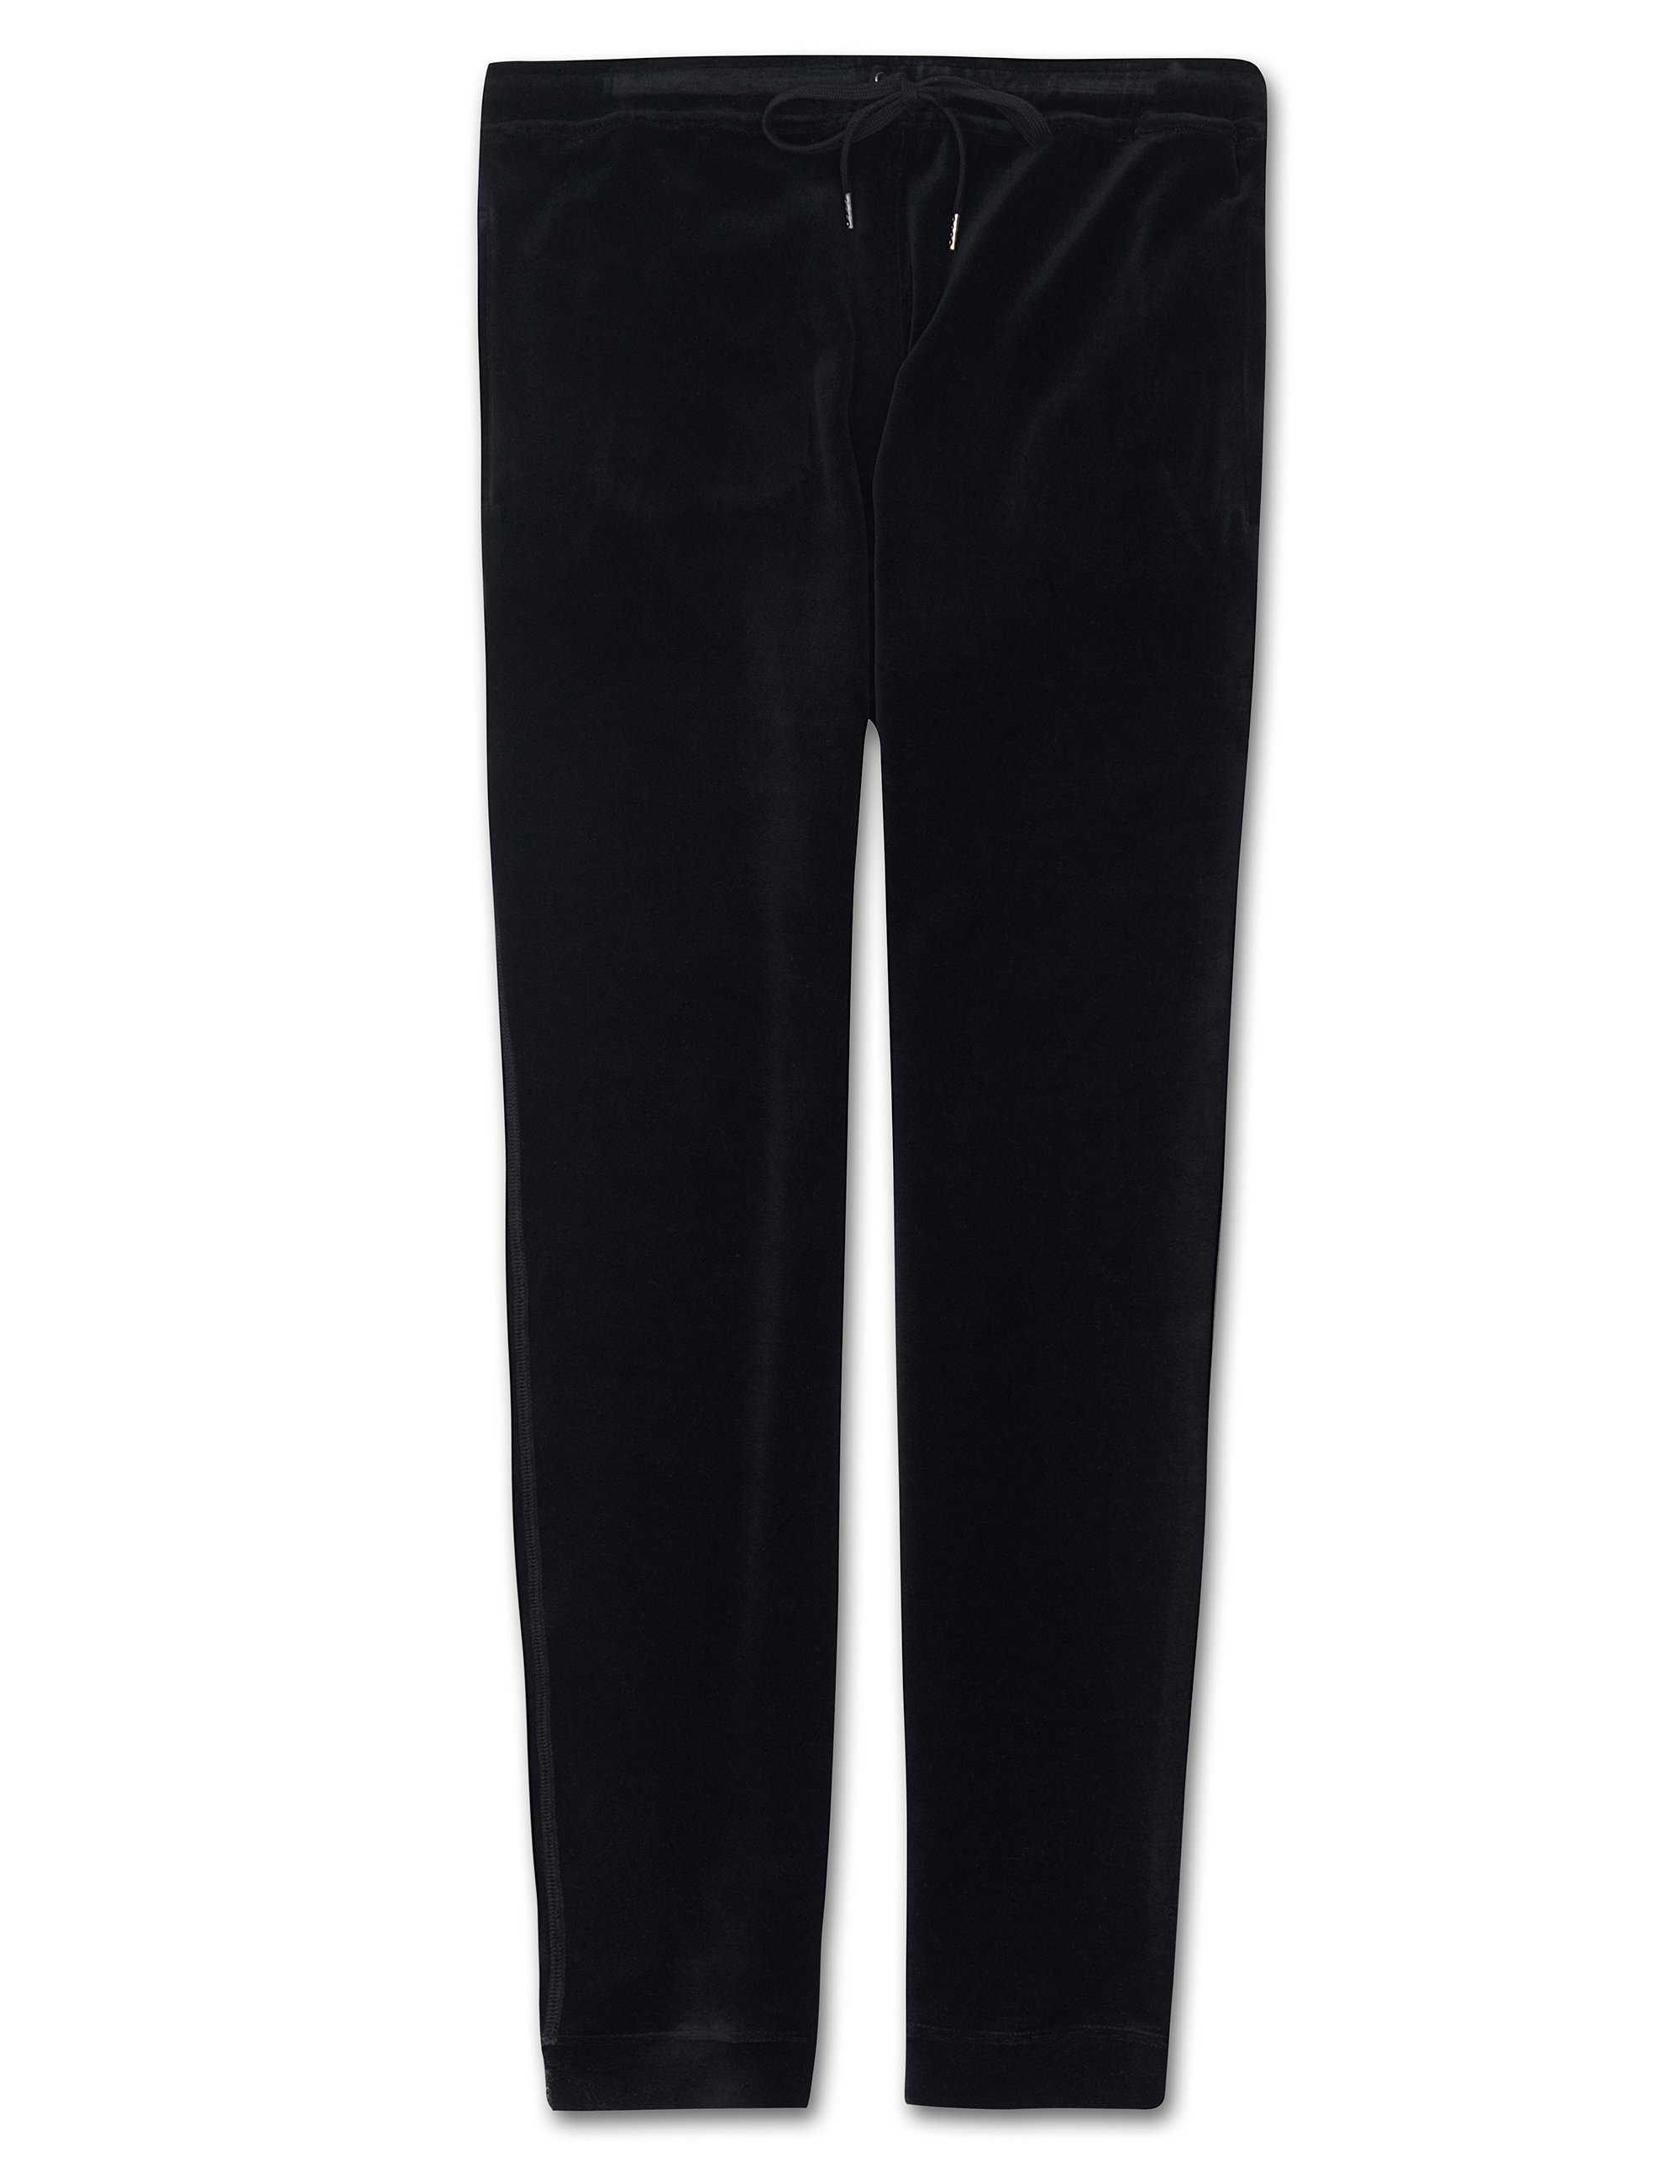 Men's Jersey Sweatpants Nico Velour Black